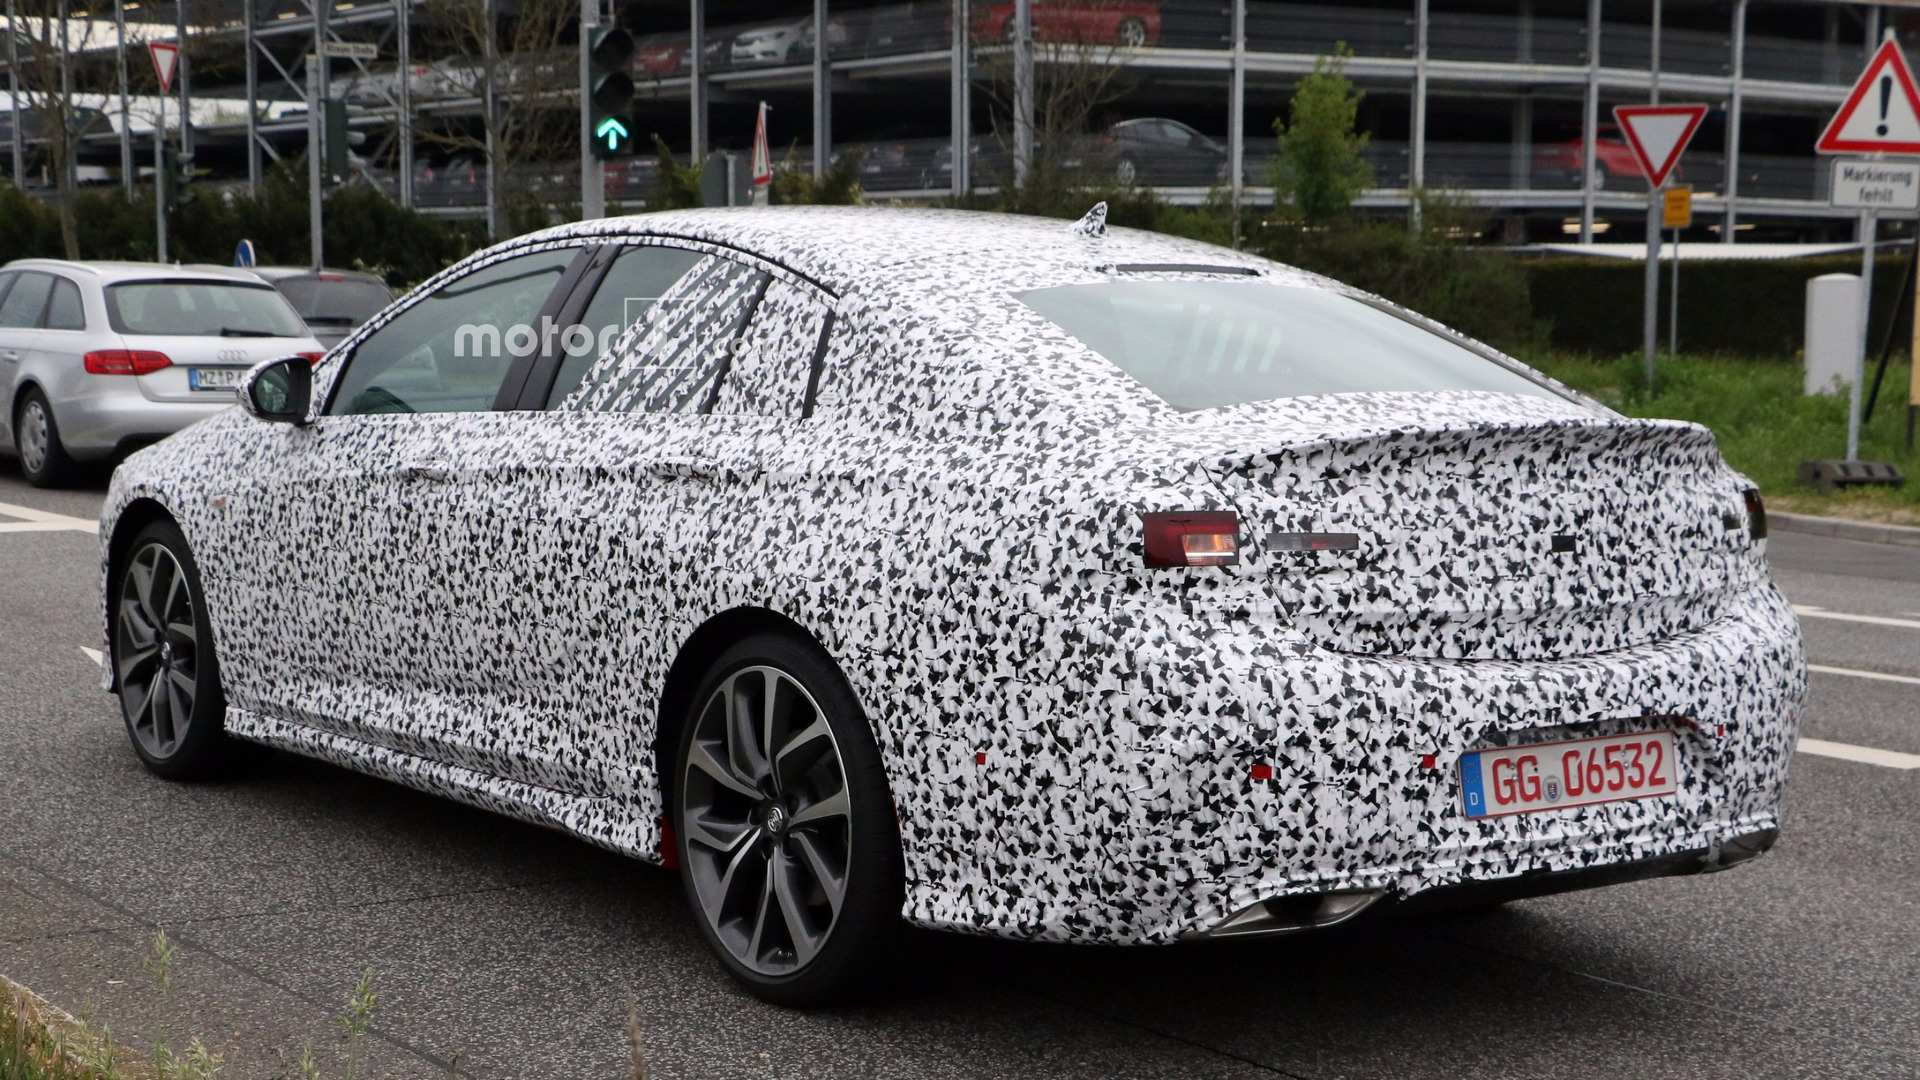 47 New Opel Insignia Opc 2020 Pricing with Opel Insignia Opc 2020